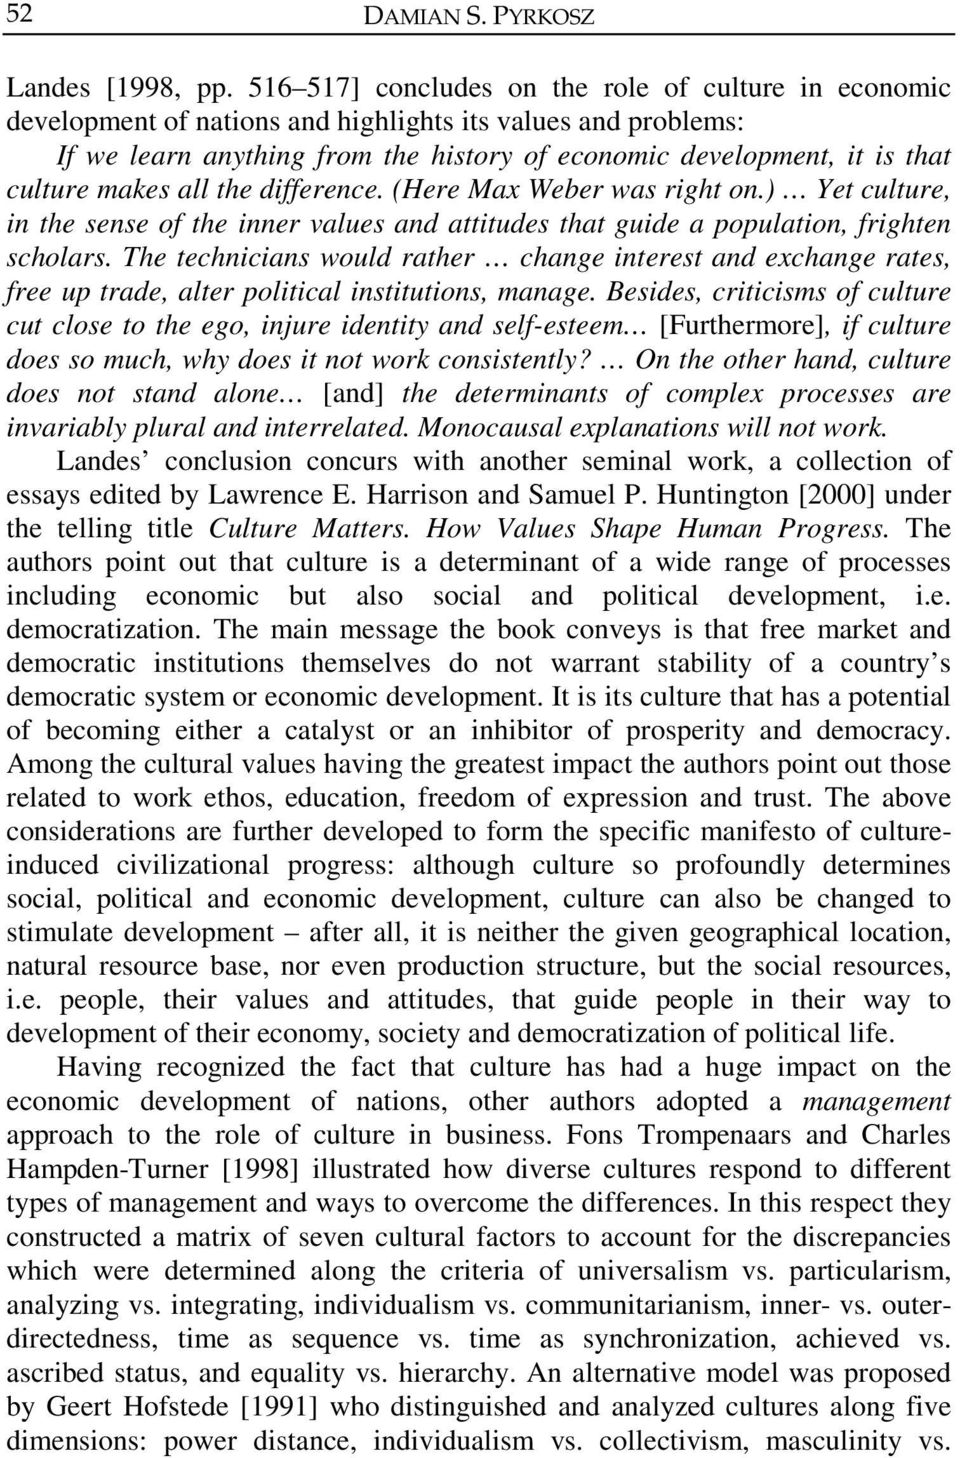 makes all the difference. (Here Max Weber was right on.) Yet culture, in the sense of the inner values and attitudes that guide a population, frighten scholars.